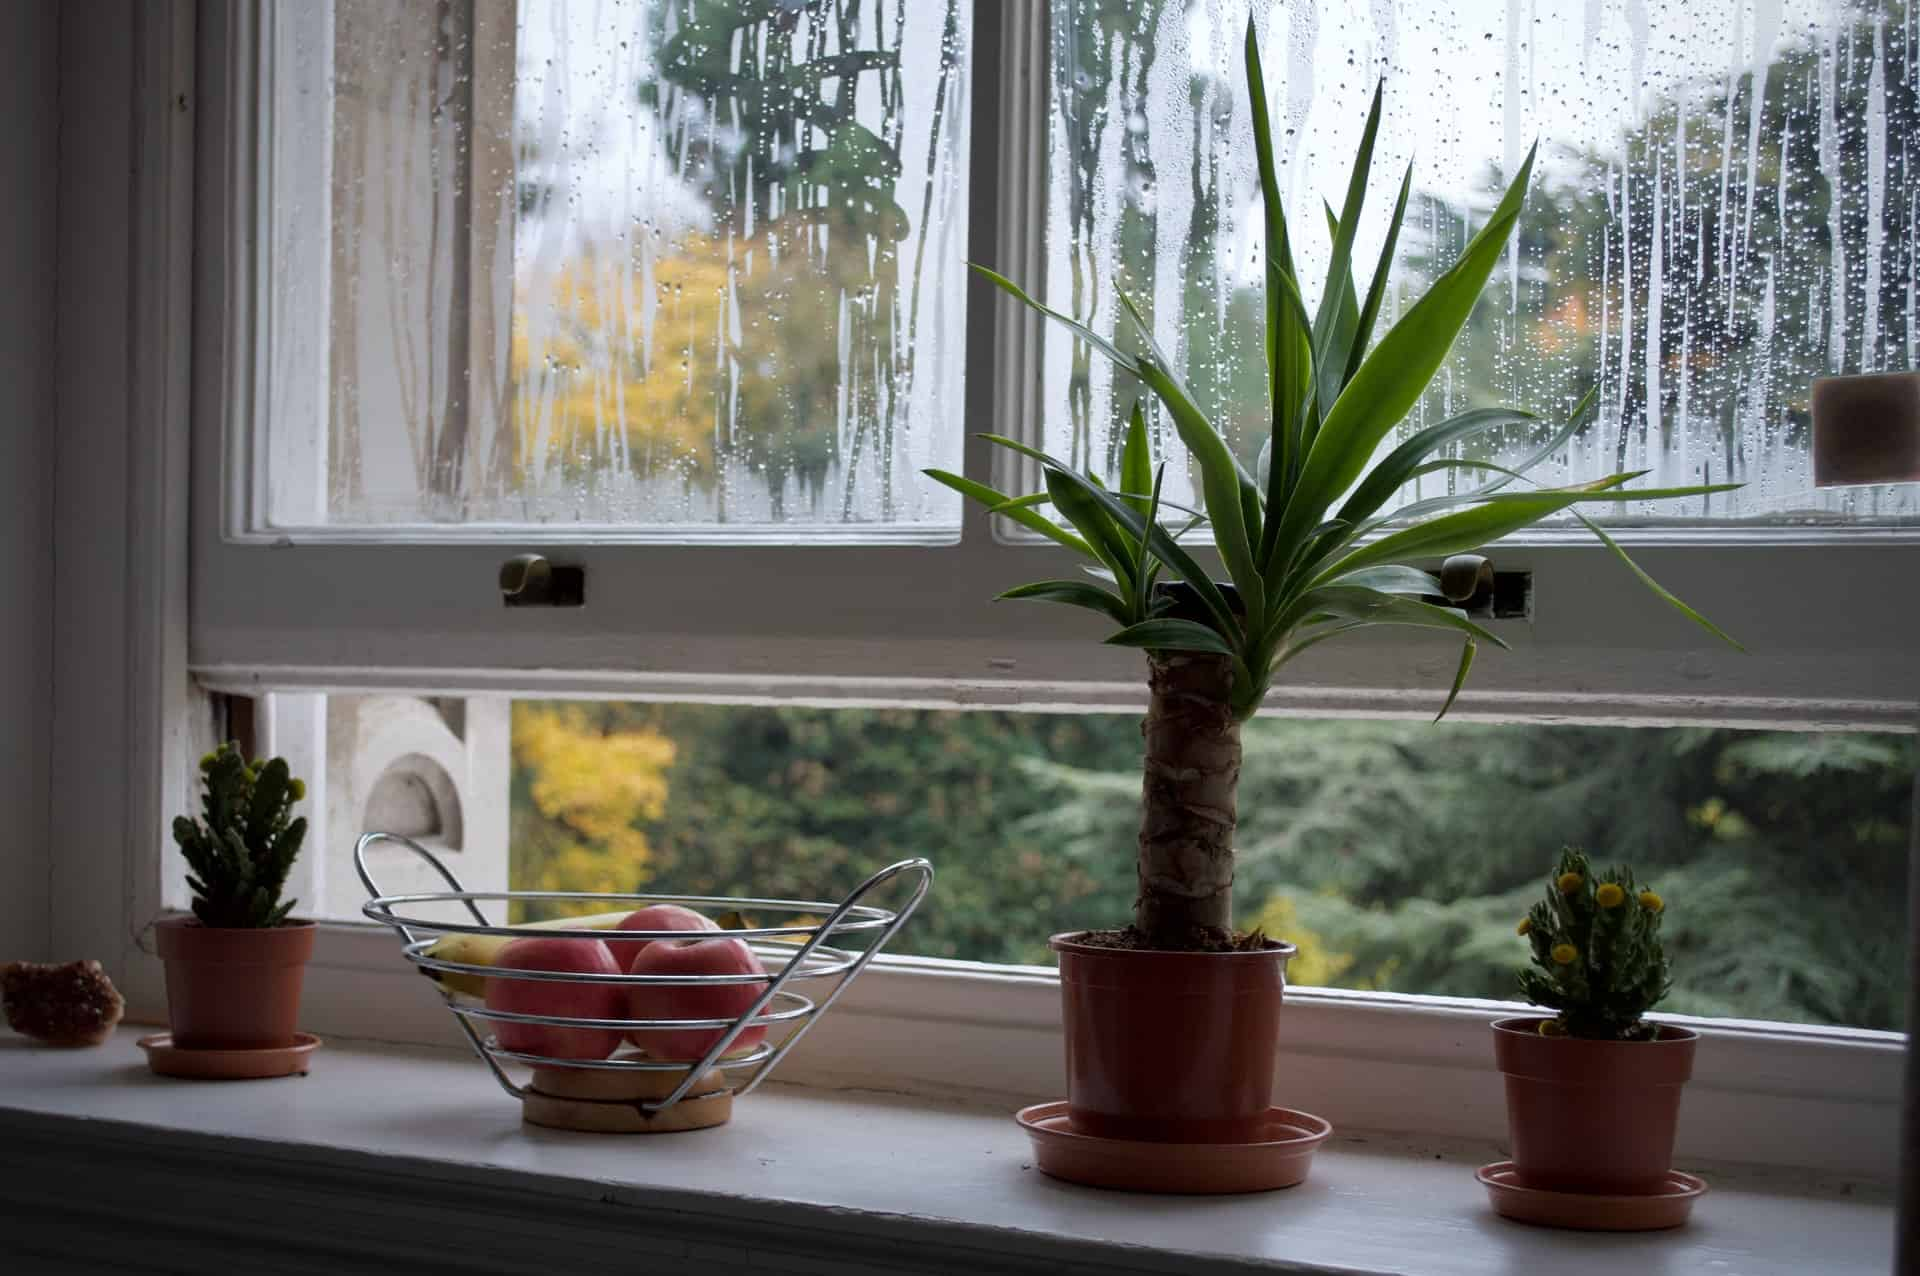 Is it Good to Leave Your Windows Open?